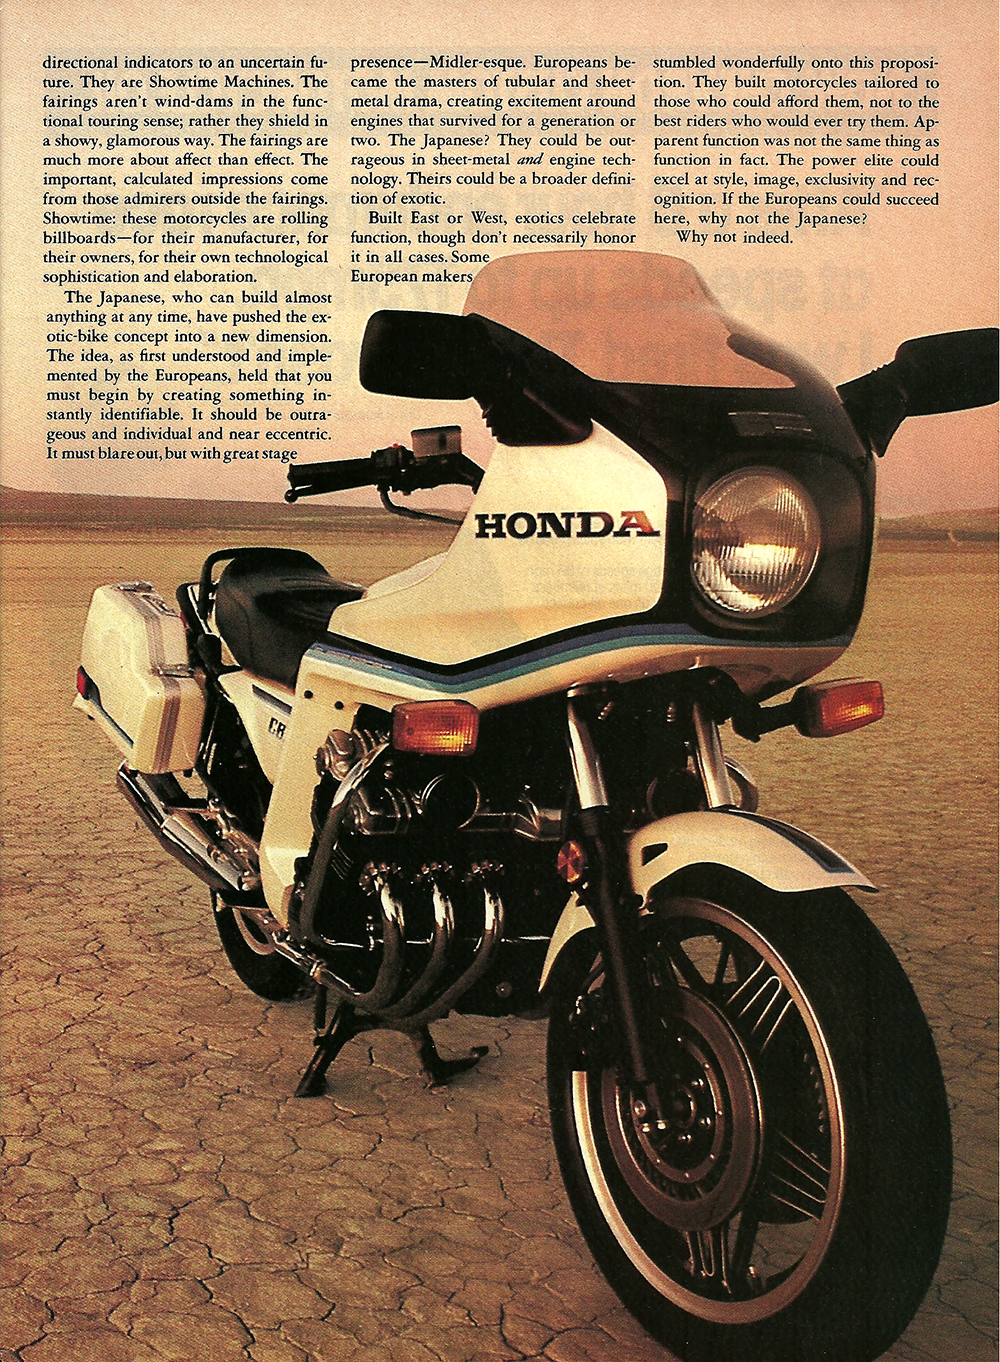 1982 Honda CBX vs CX 500 Turbo road test 02.jpg